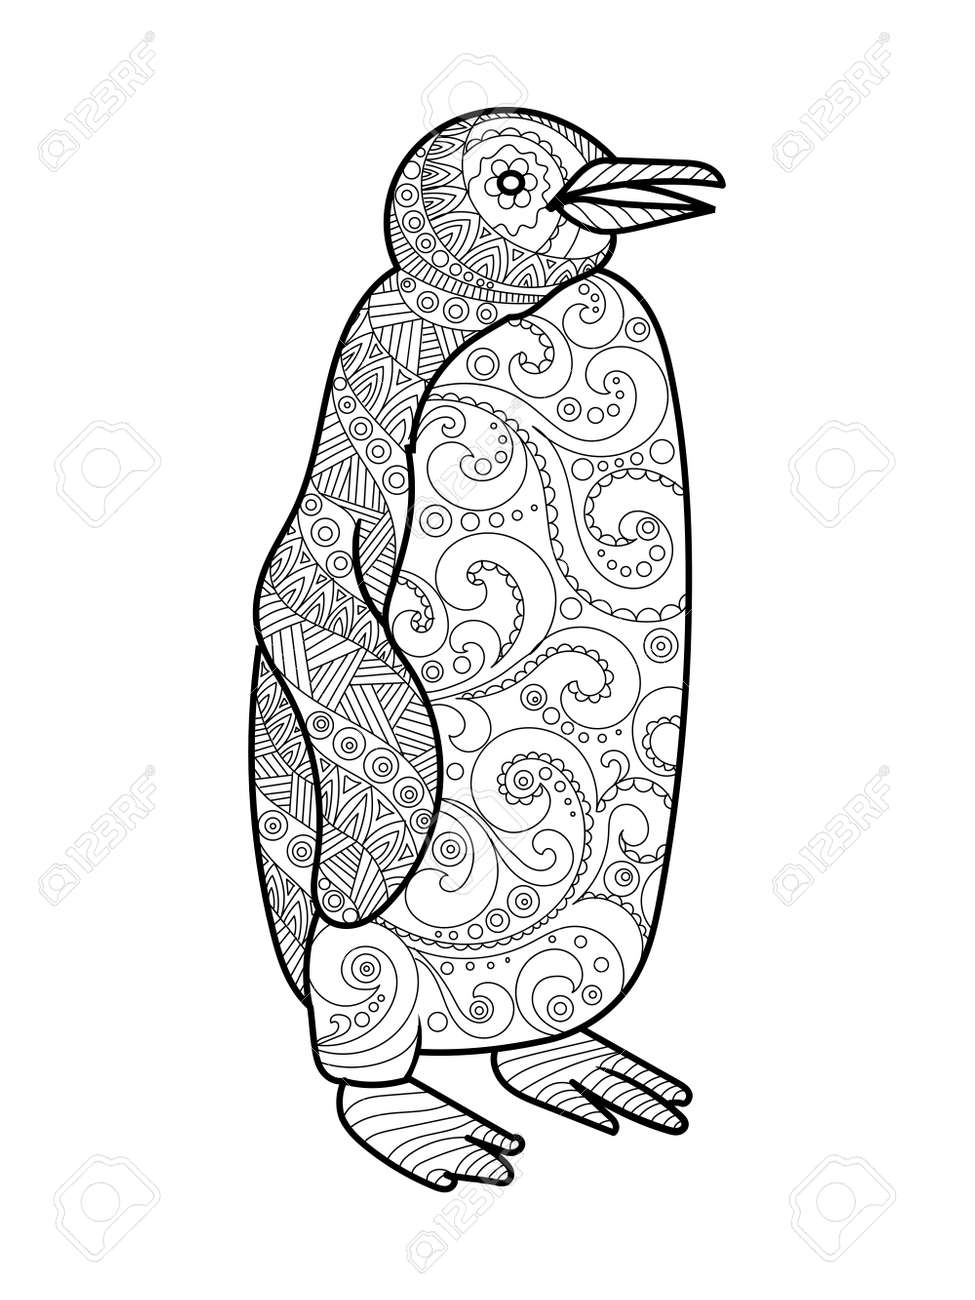 Penguin coloring book for adults vector illustration.